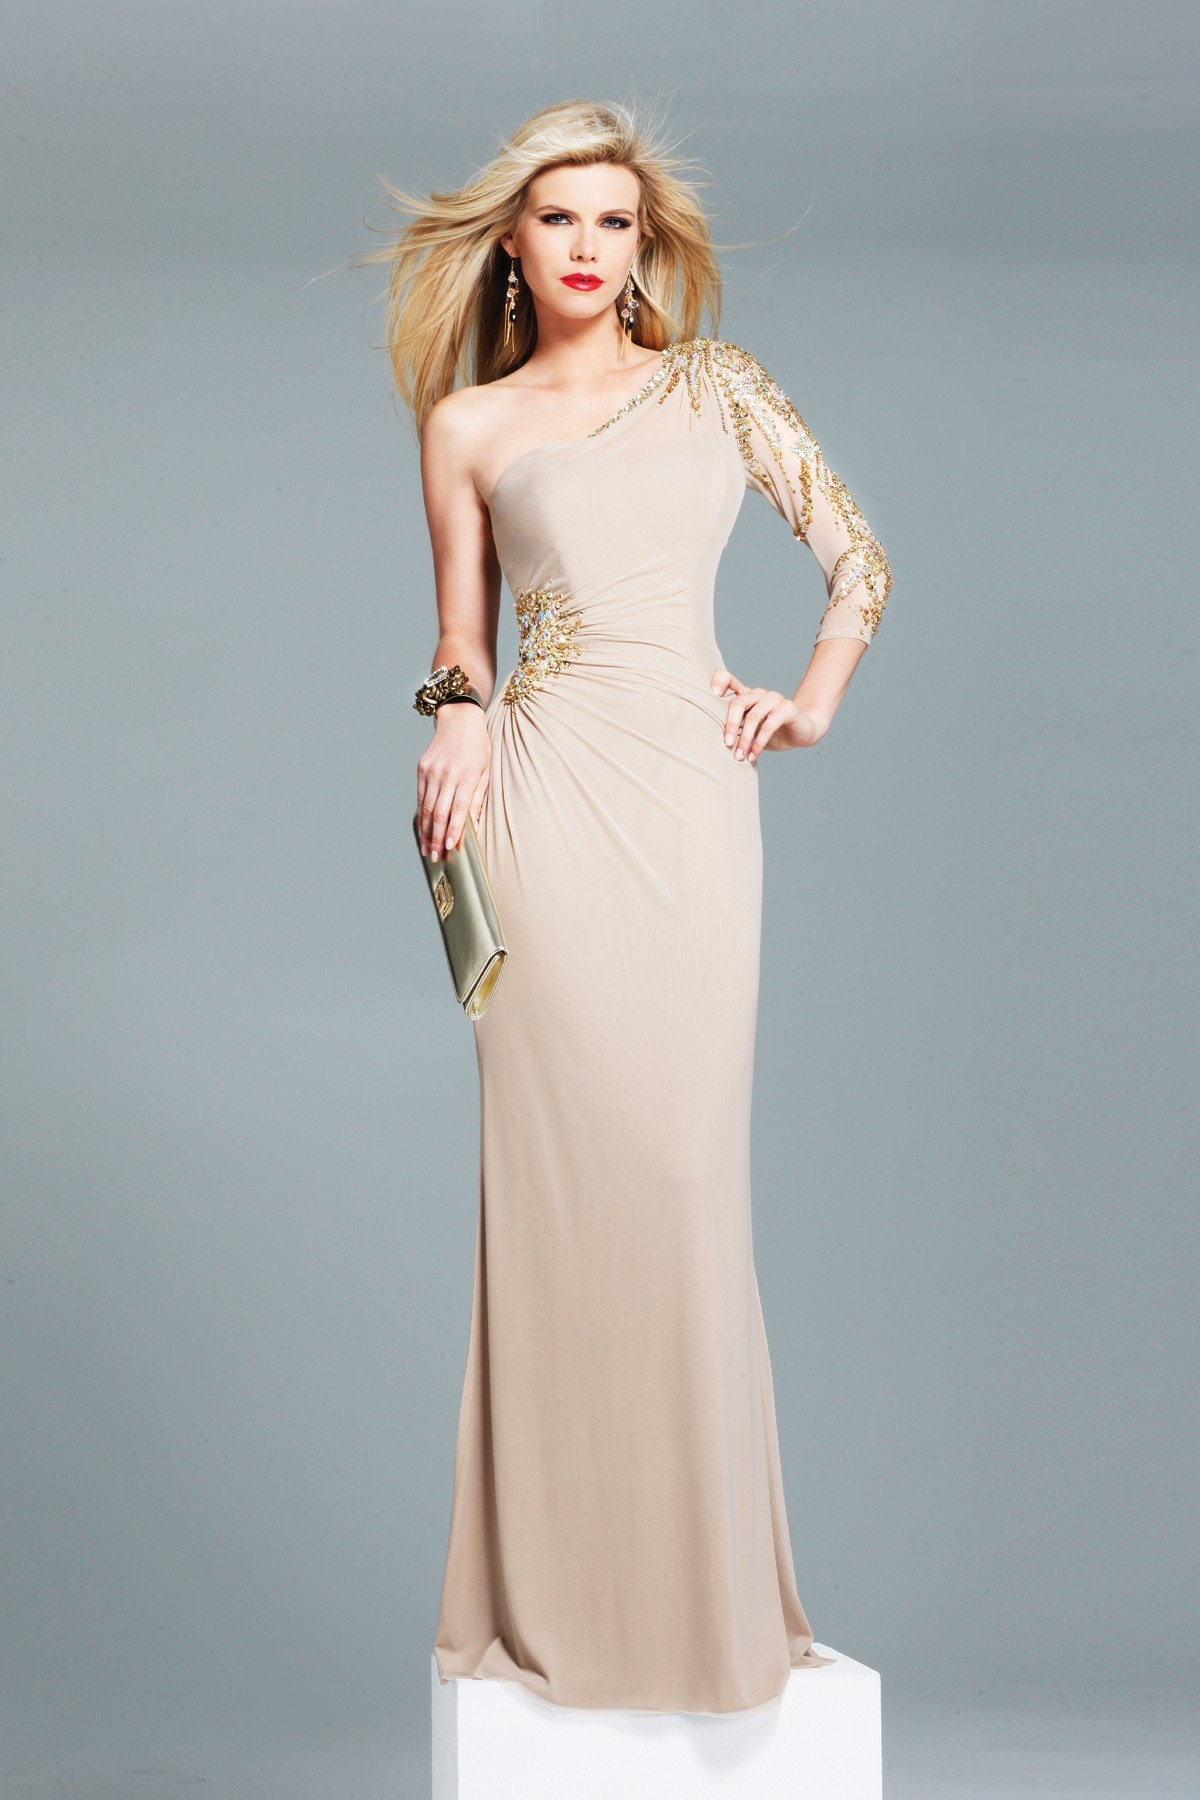 Beige Floor Length One Shoulder And Long Sleeve Column Sexy Dresses With Gold Beads And Side Slit